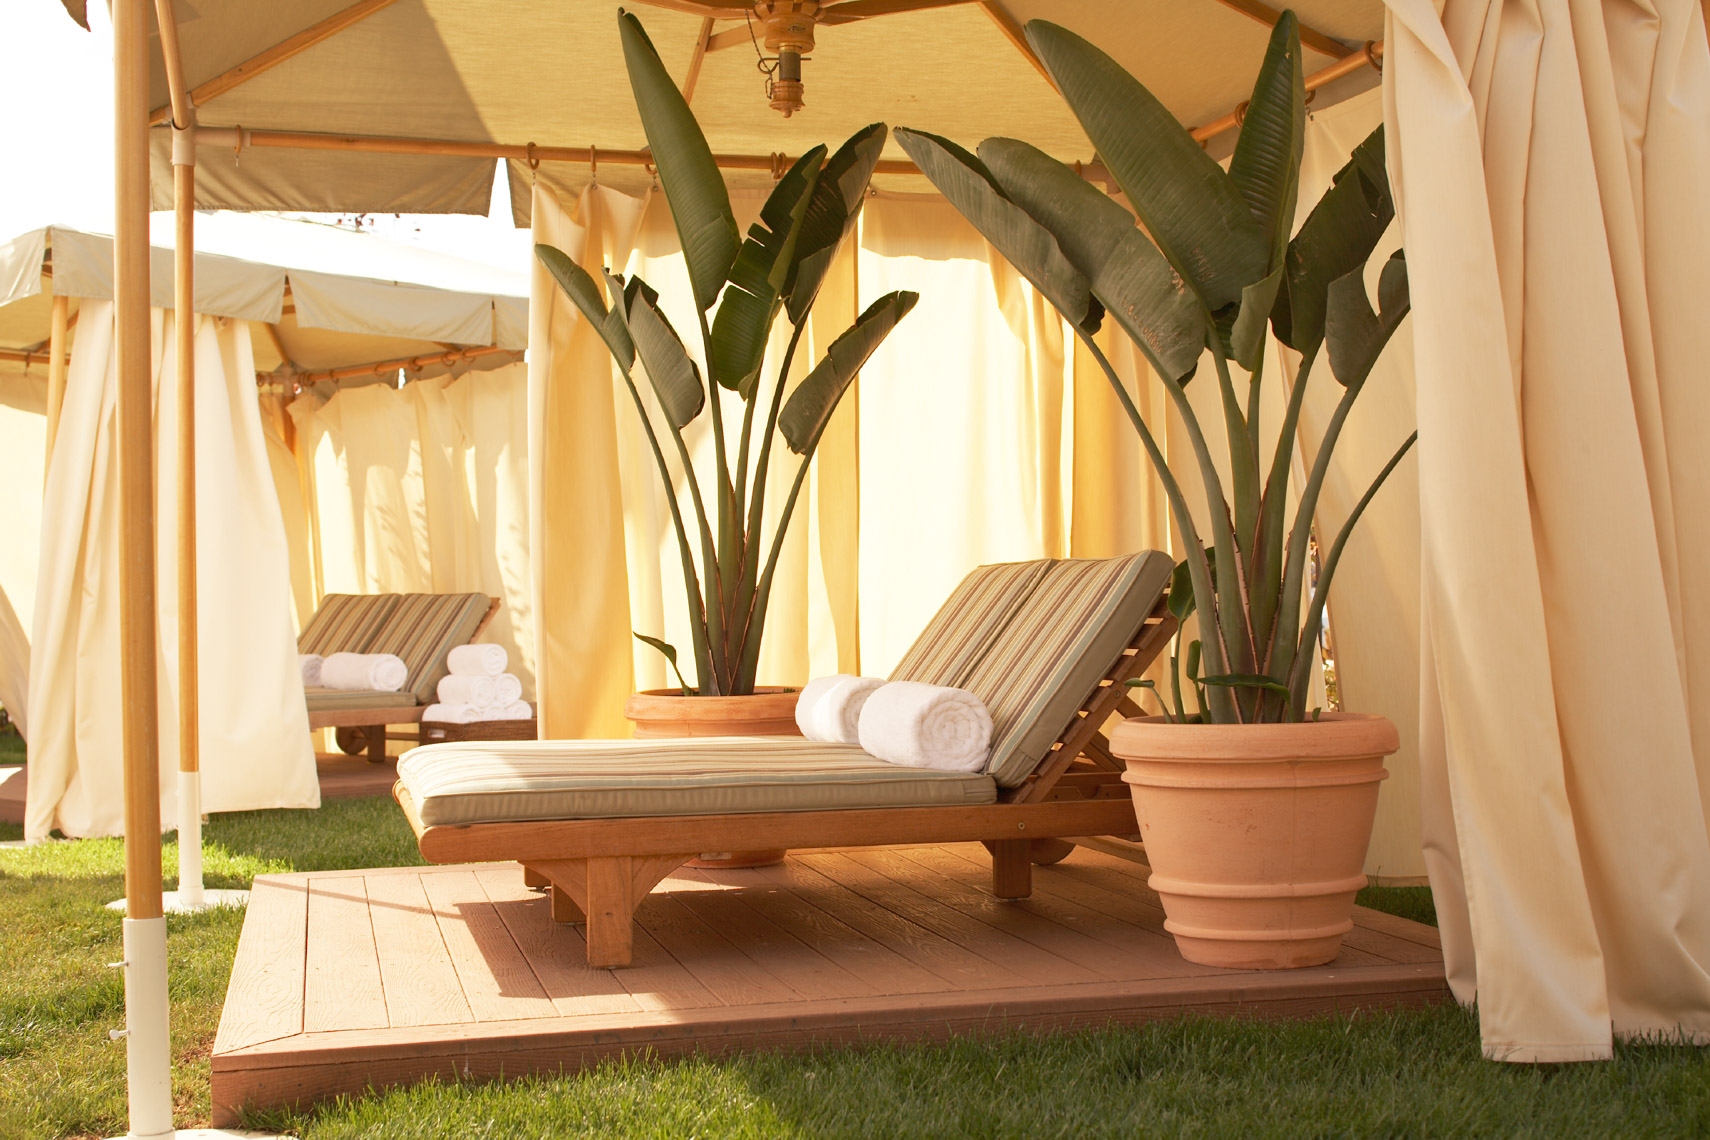 teak wooden patio lounge chaises with striped cushions and rolled white beach towels under canvas canopy at the resort spa San Francisco architectural photographer